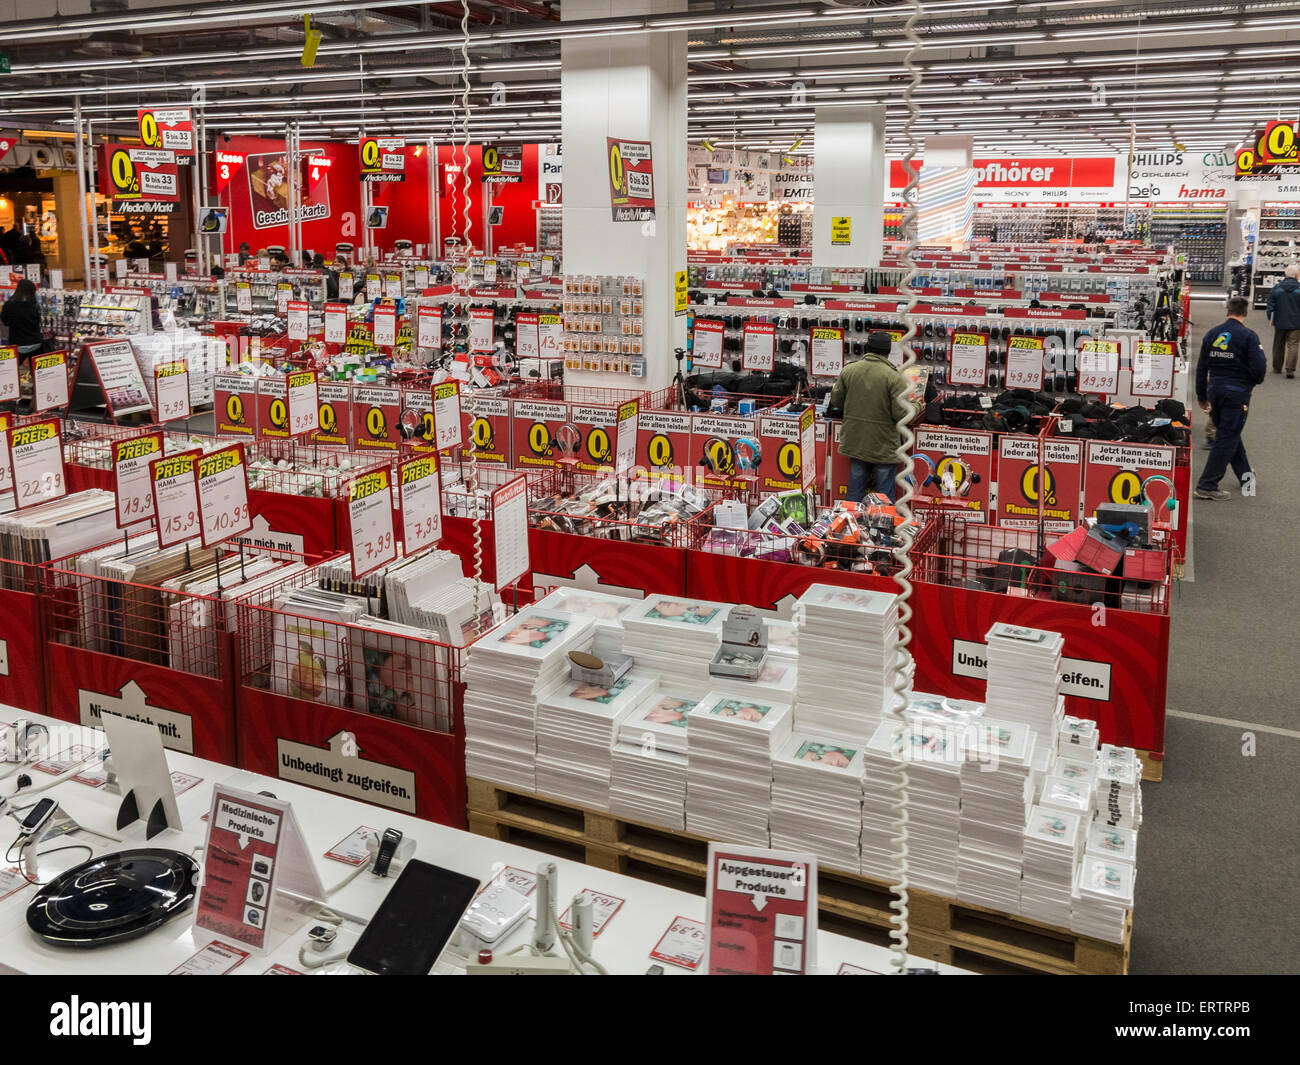 Inside a  Media Markt consumer electronics store in Germany, Europe - Stock Image